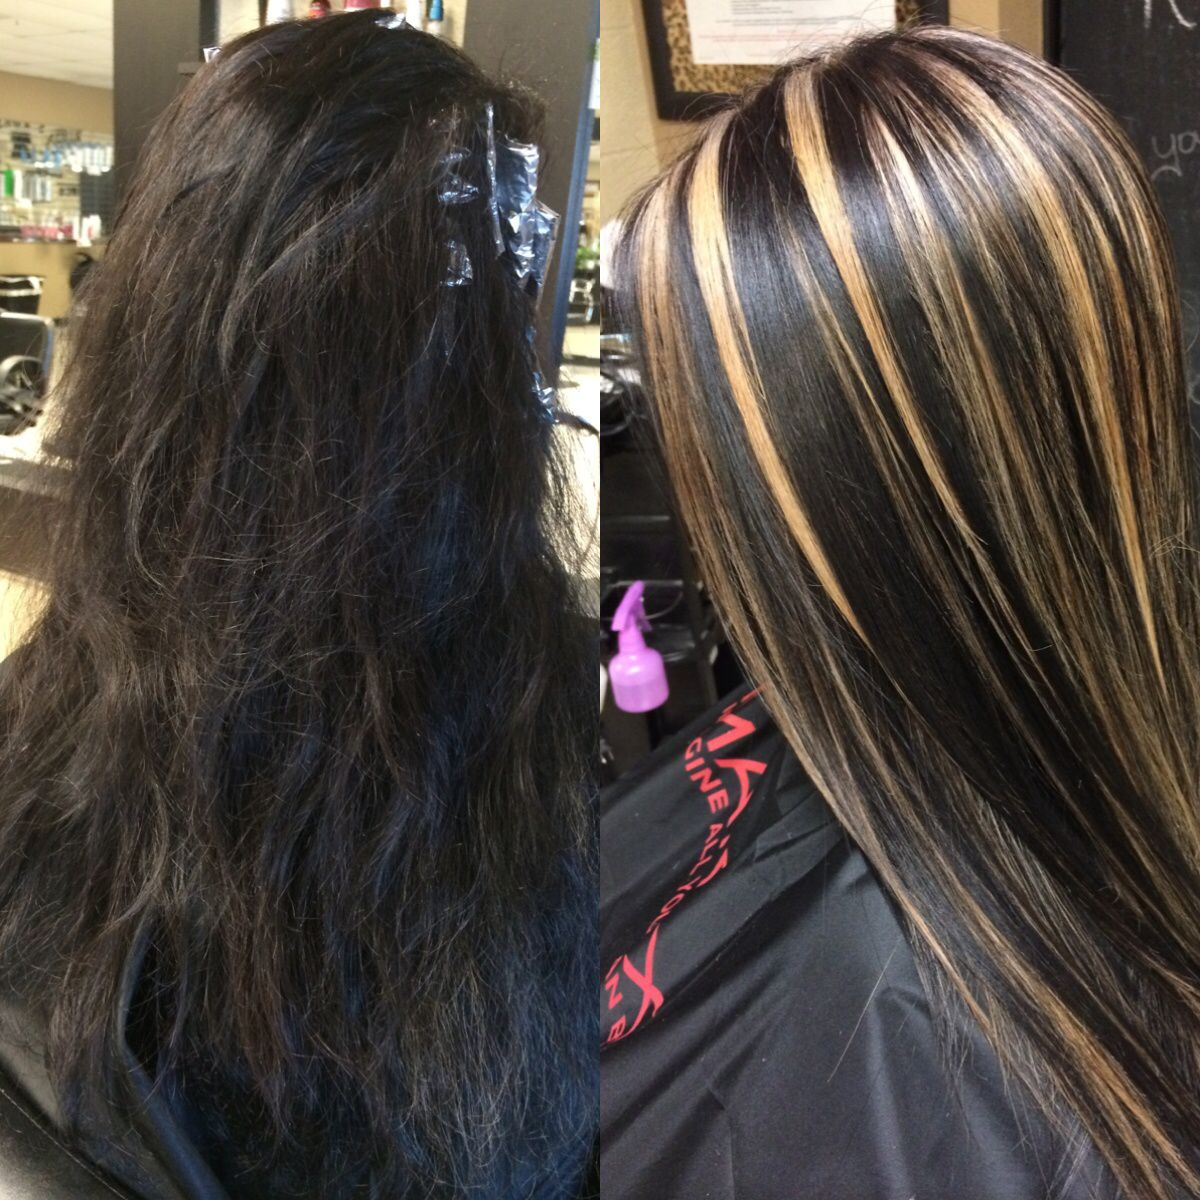 How to previously color highlighted hair advise dress for on every day in 2019